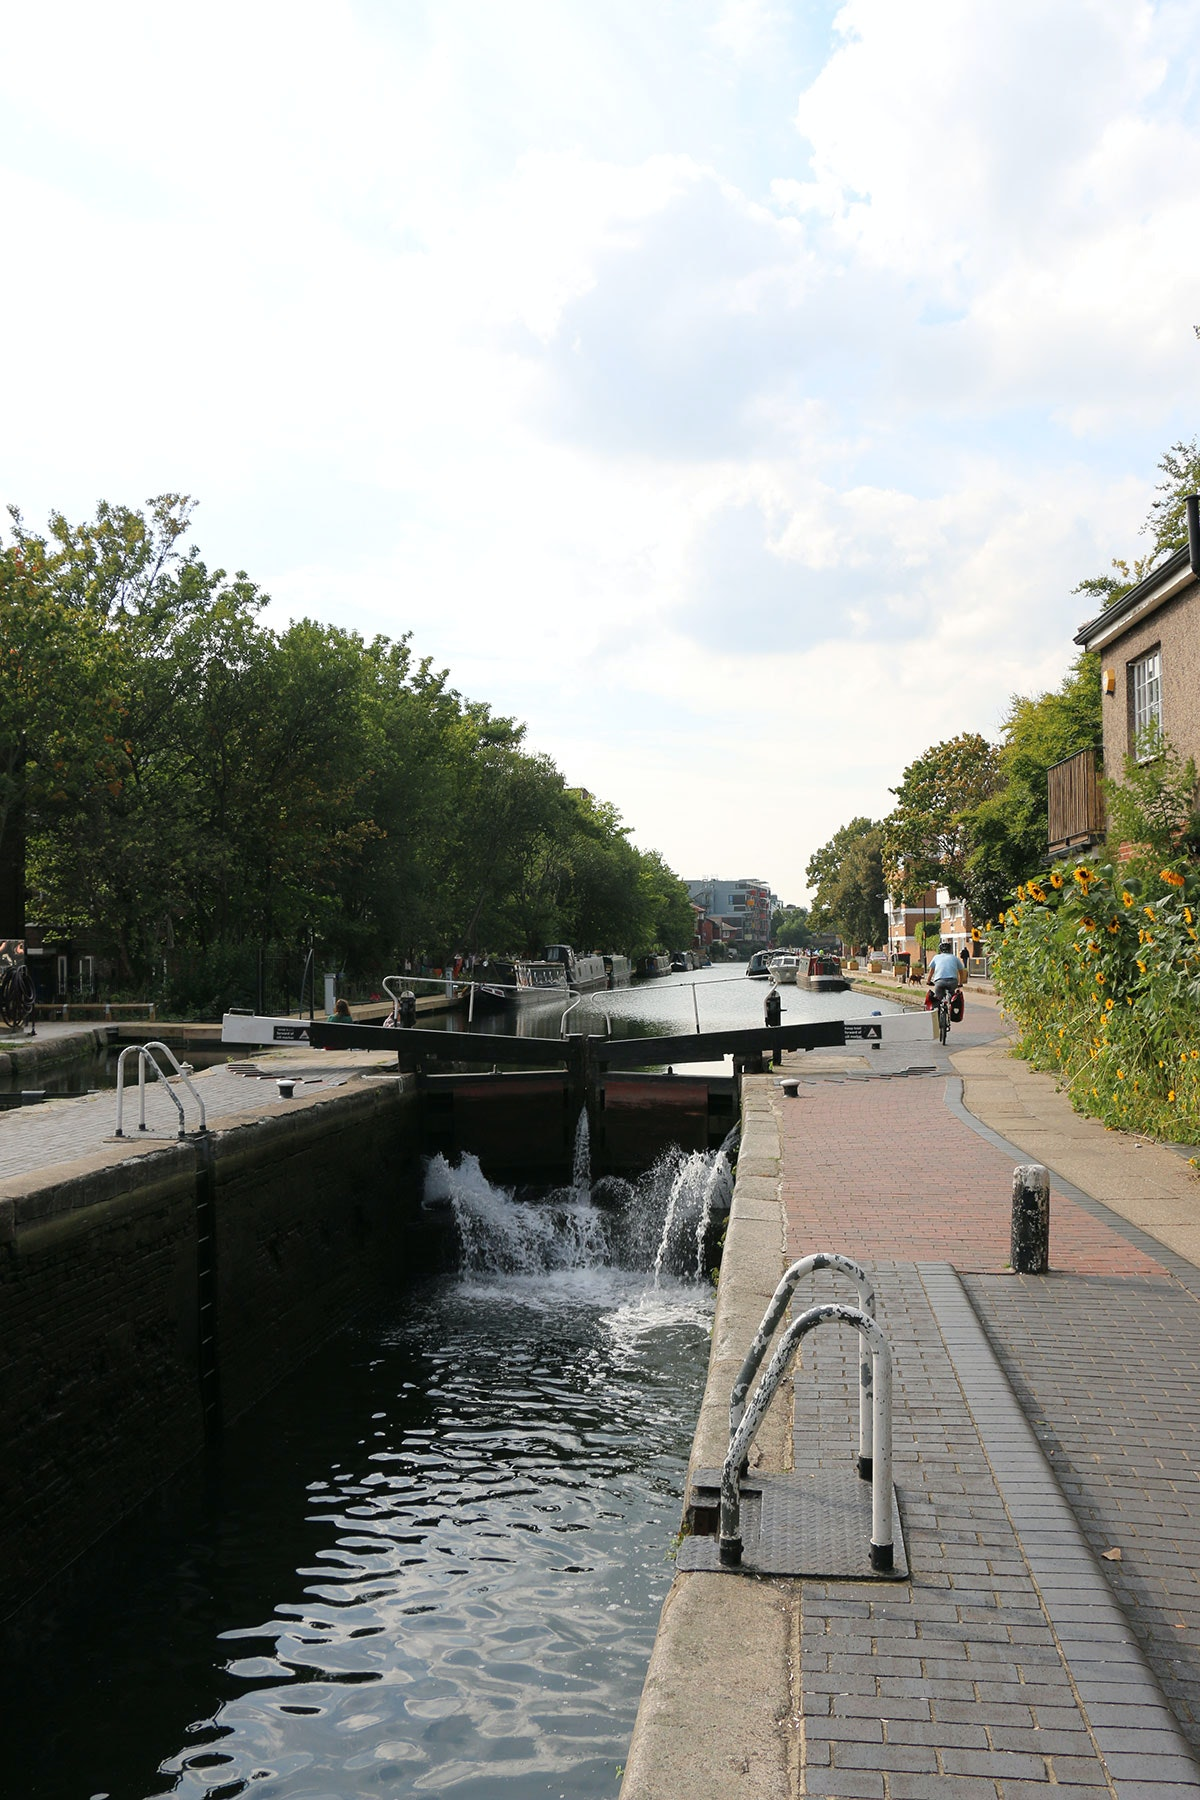 The Lock, Canal & Gasworks